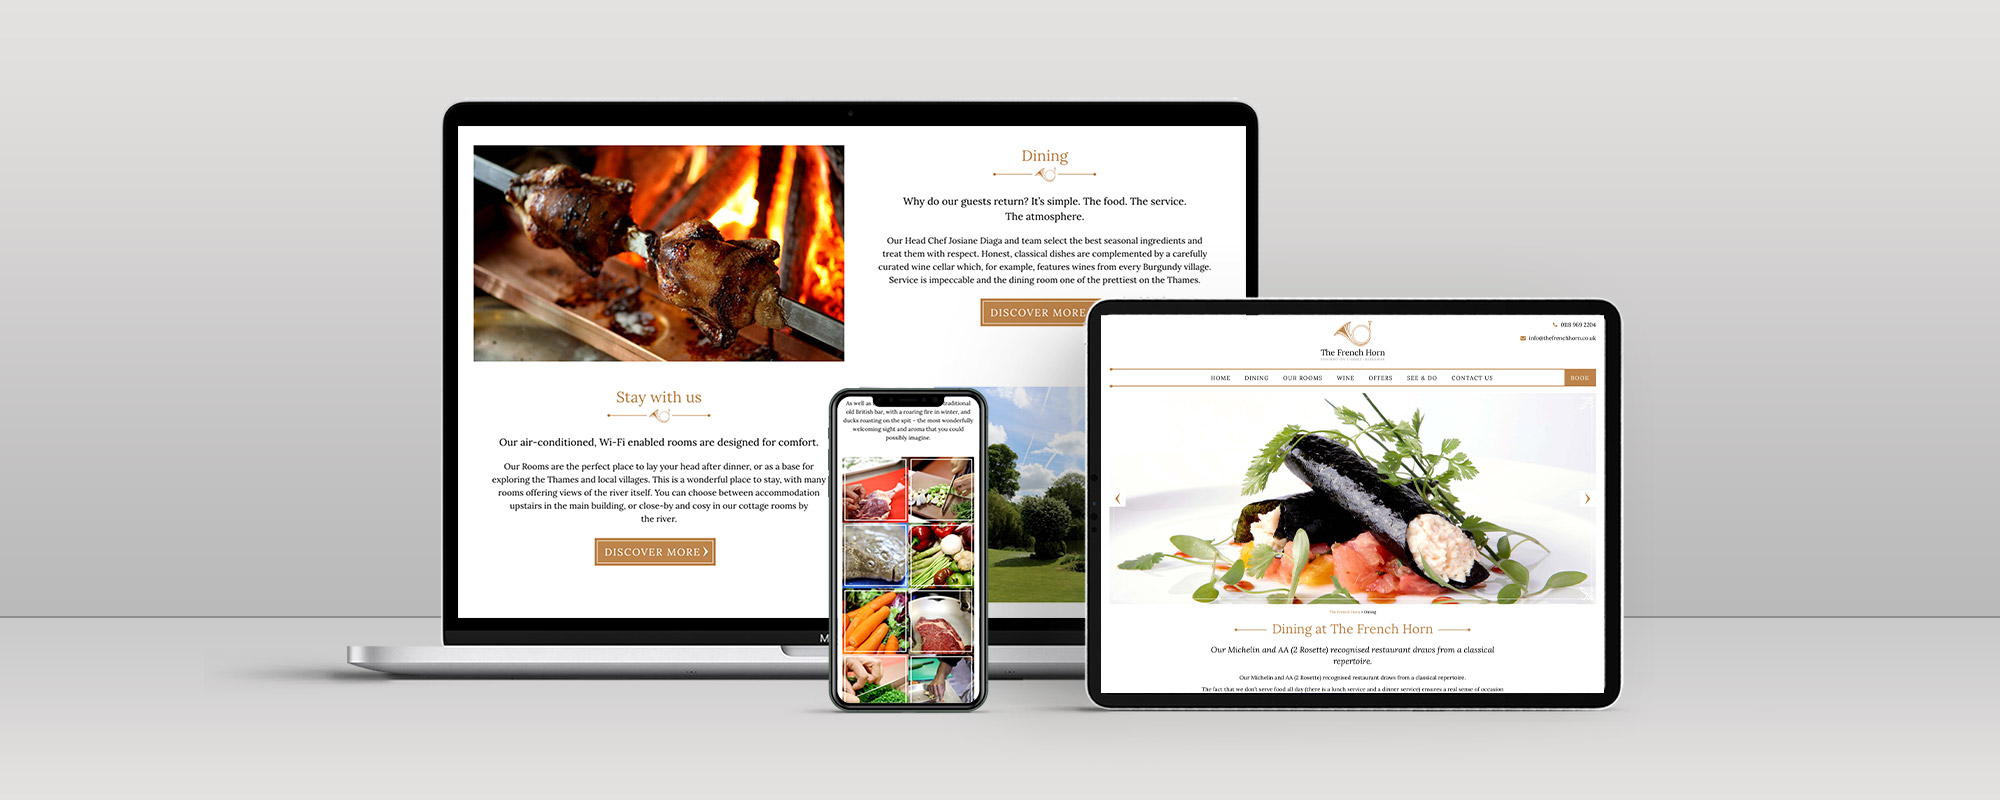 The French Horn Wordpress Website Design on 3 Devices